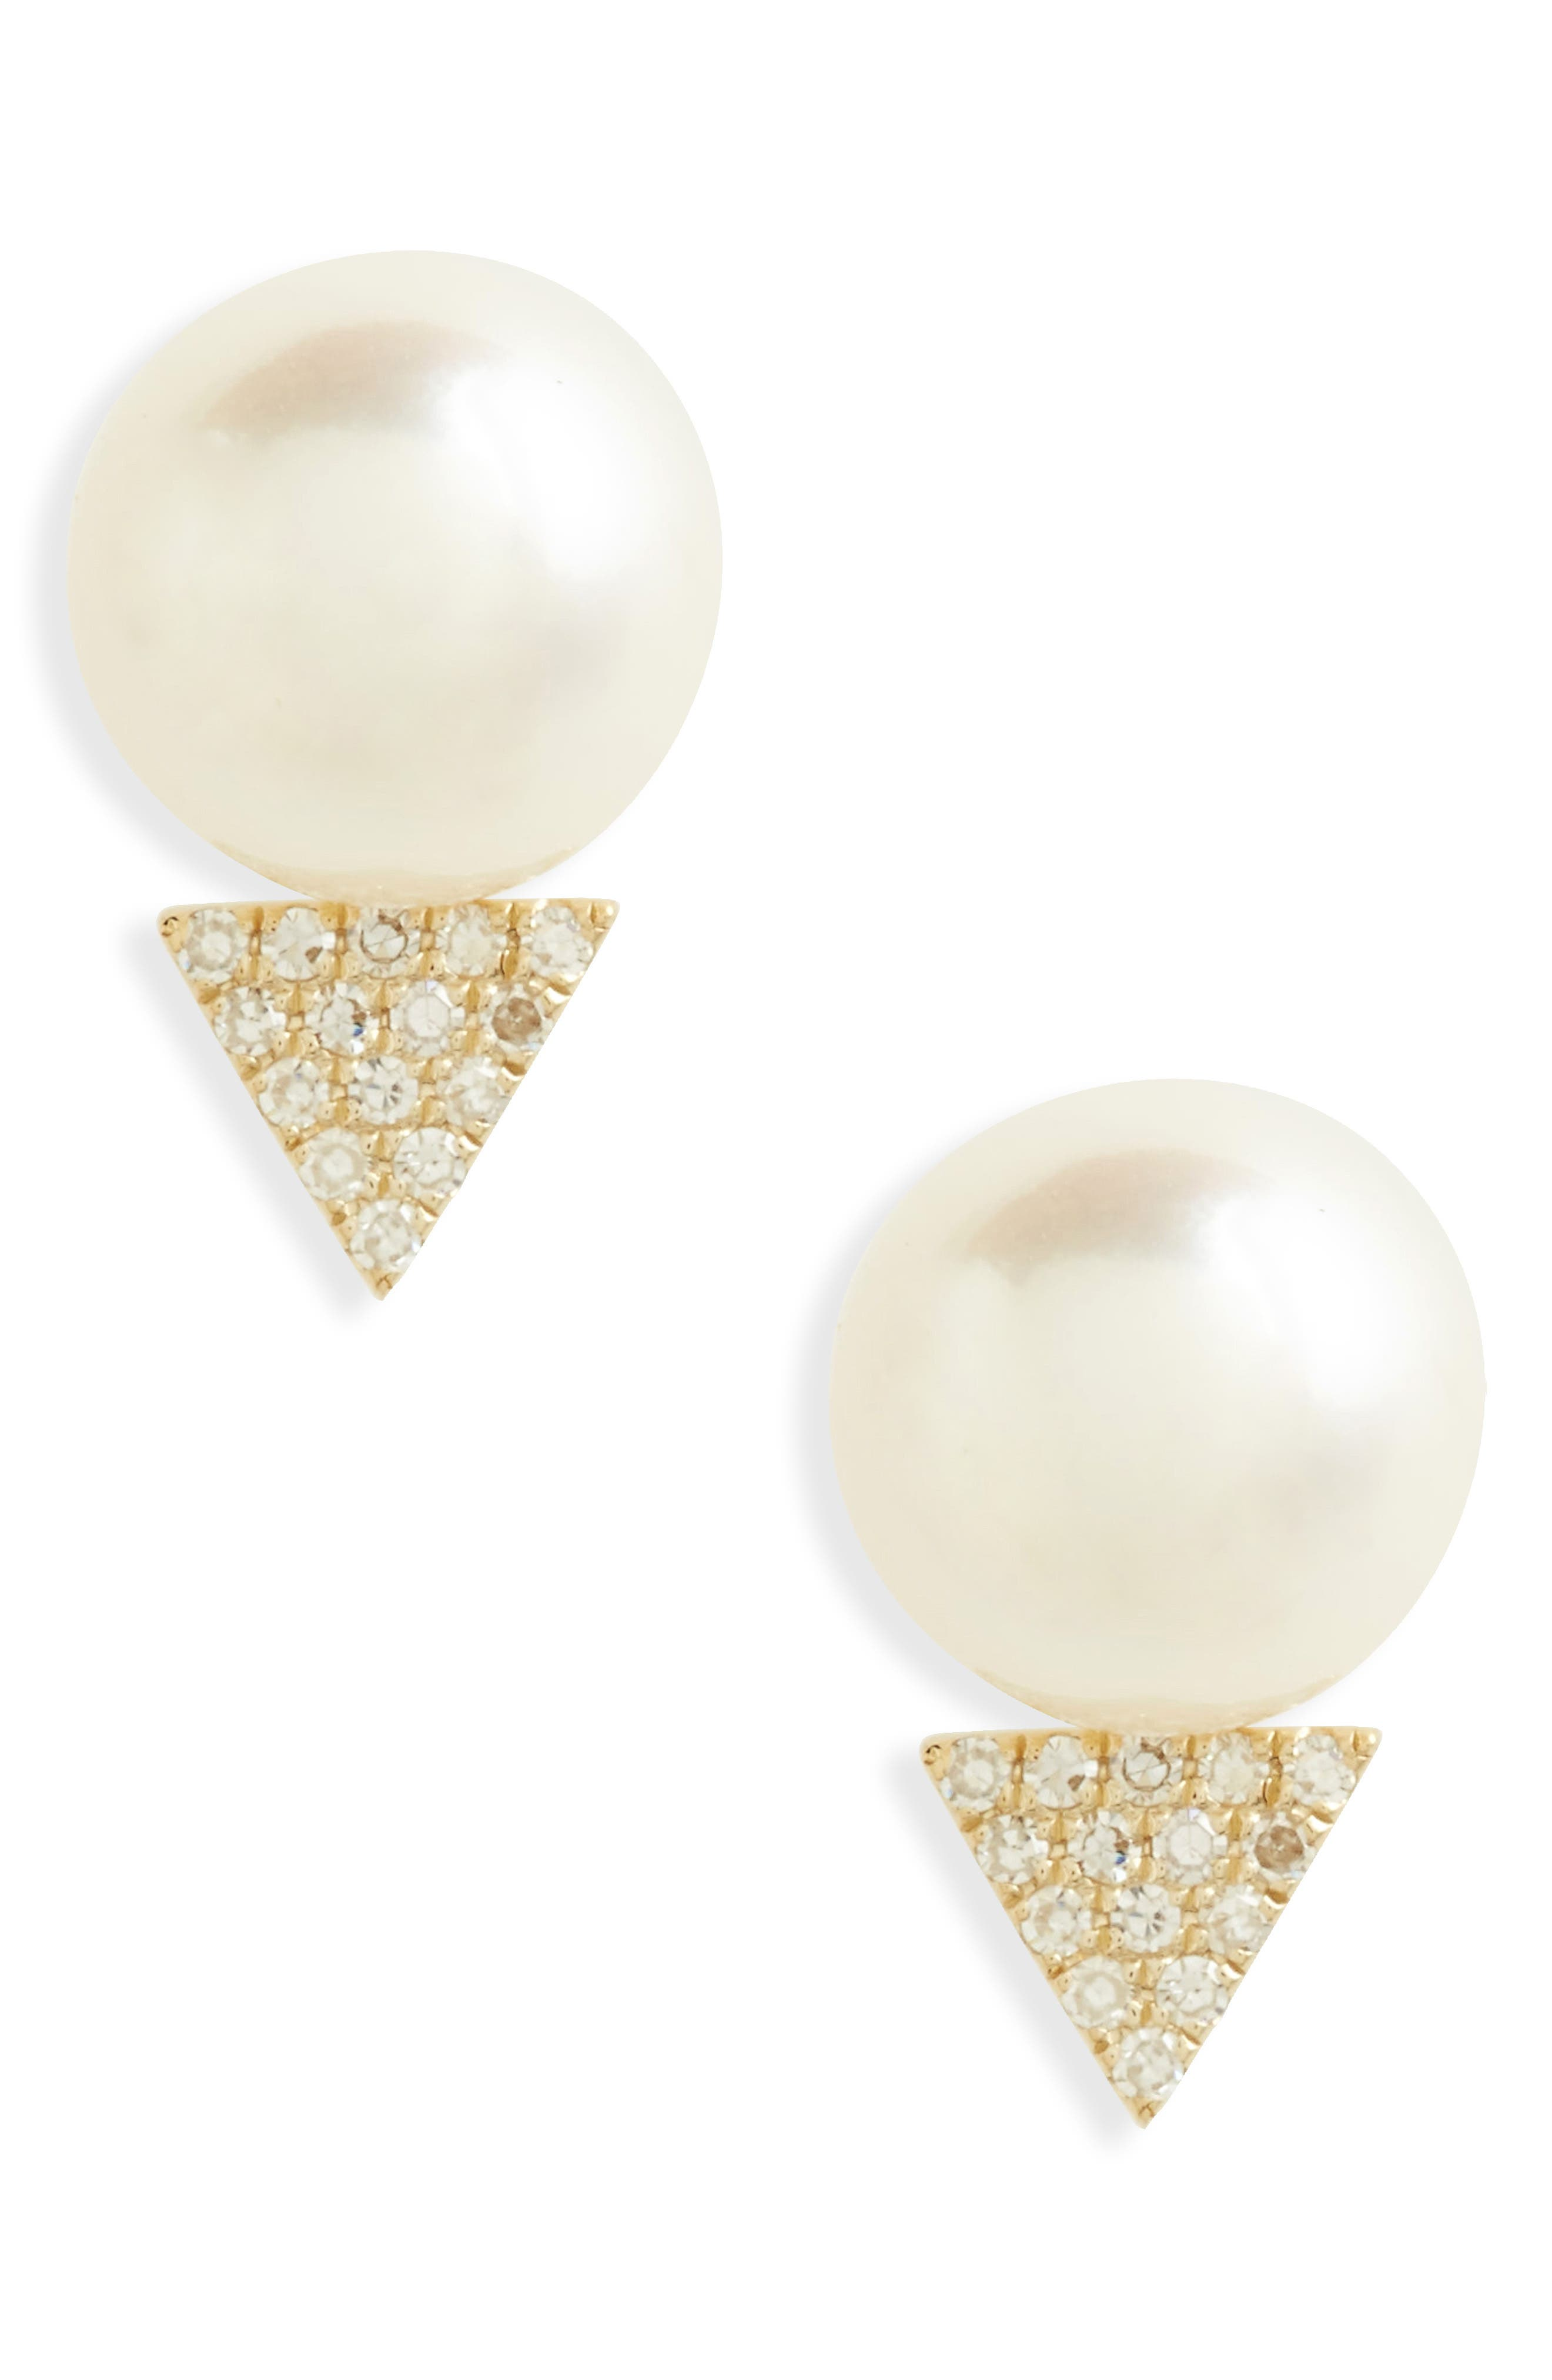 Pearl & Diamond Stud Earrings,                             Main thumbnail 1, color,                             Yellow Gold